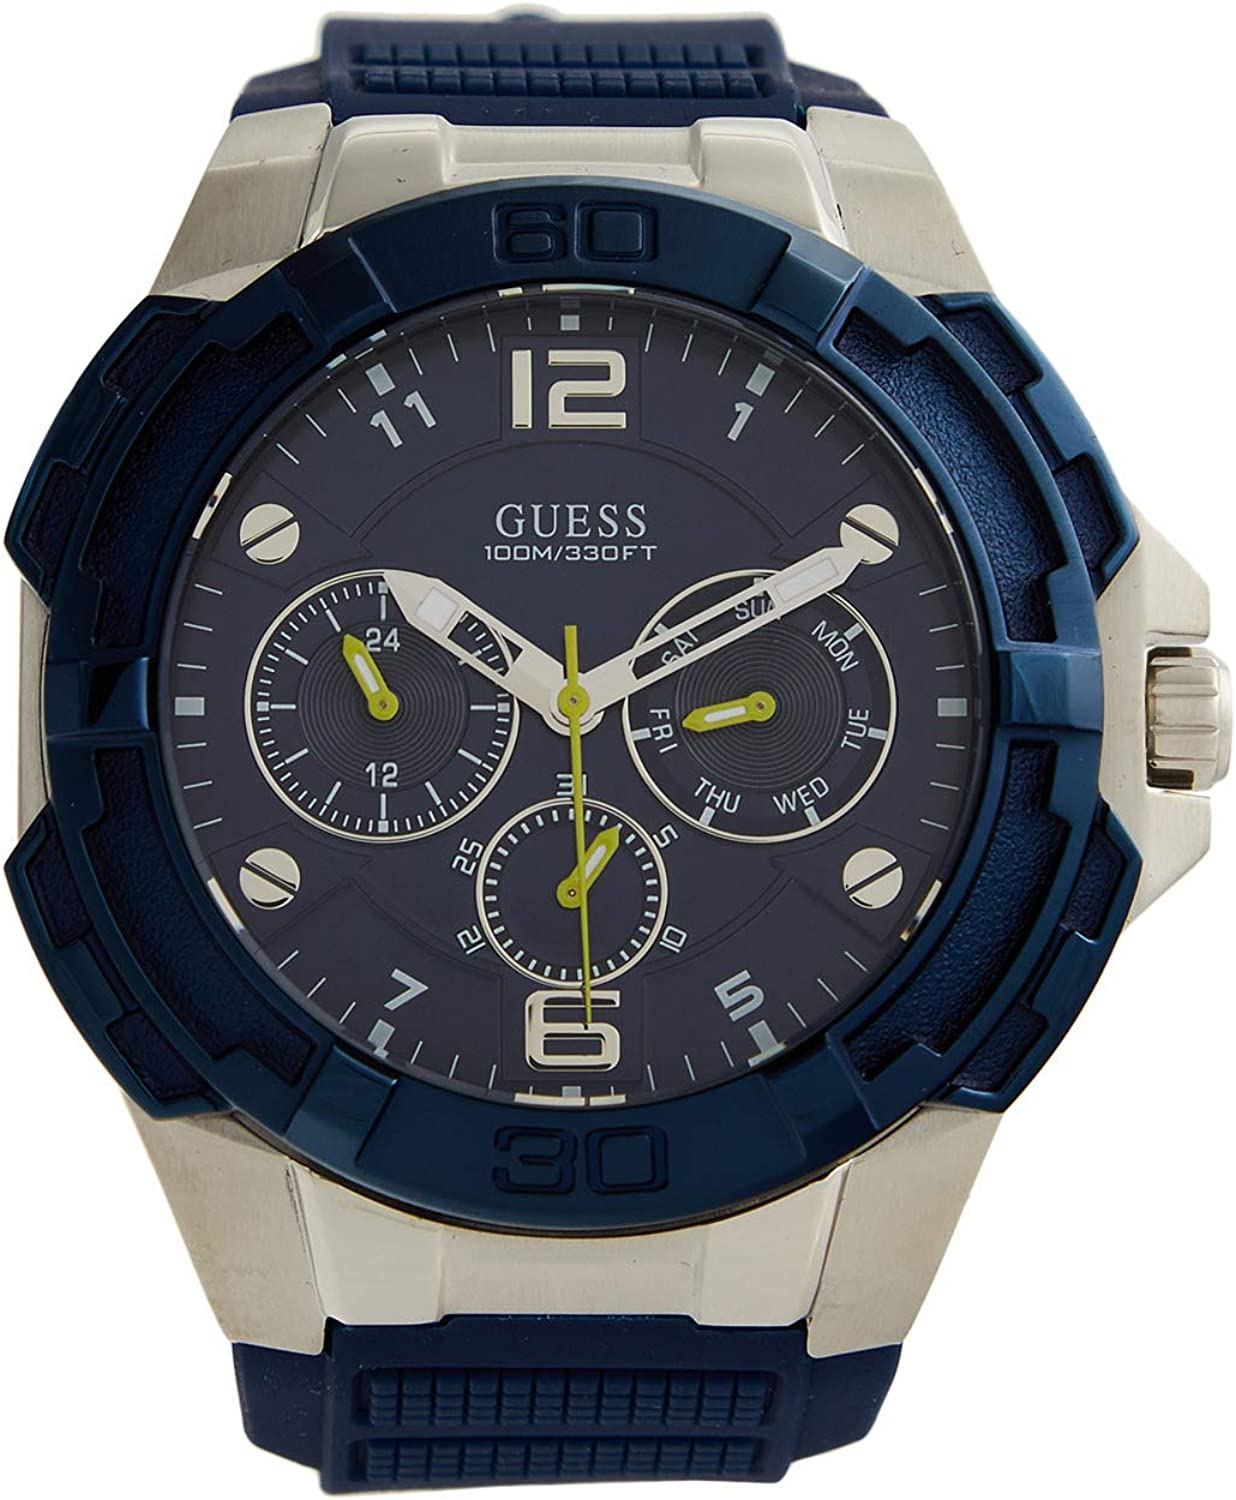 GUESS Sale special price Genesis U1254G1 Now on sale